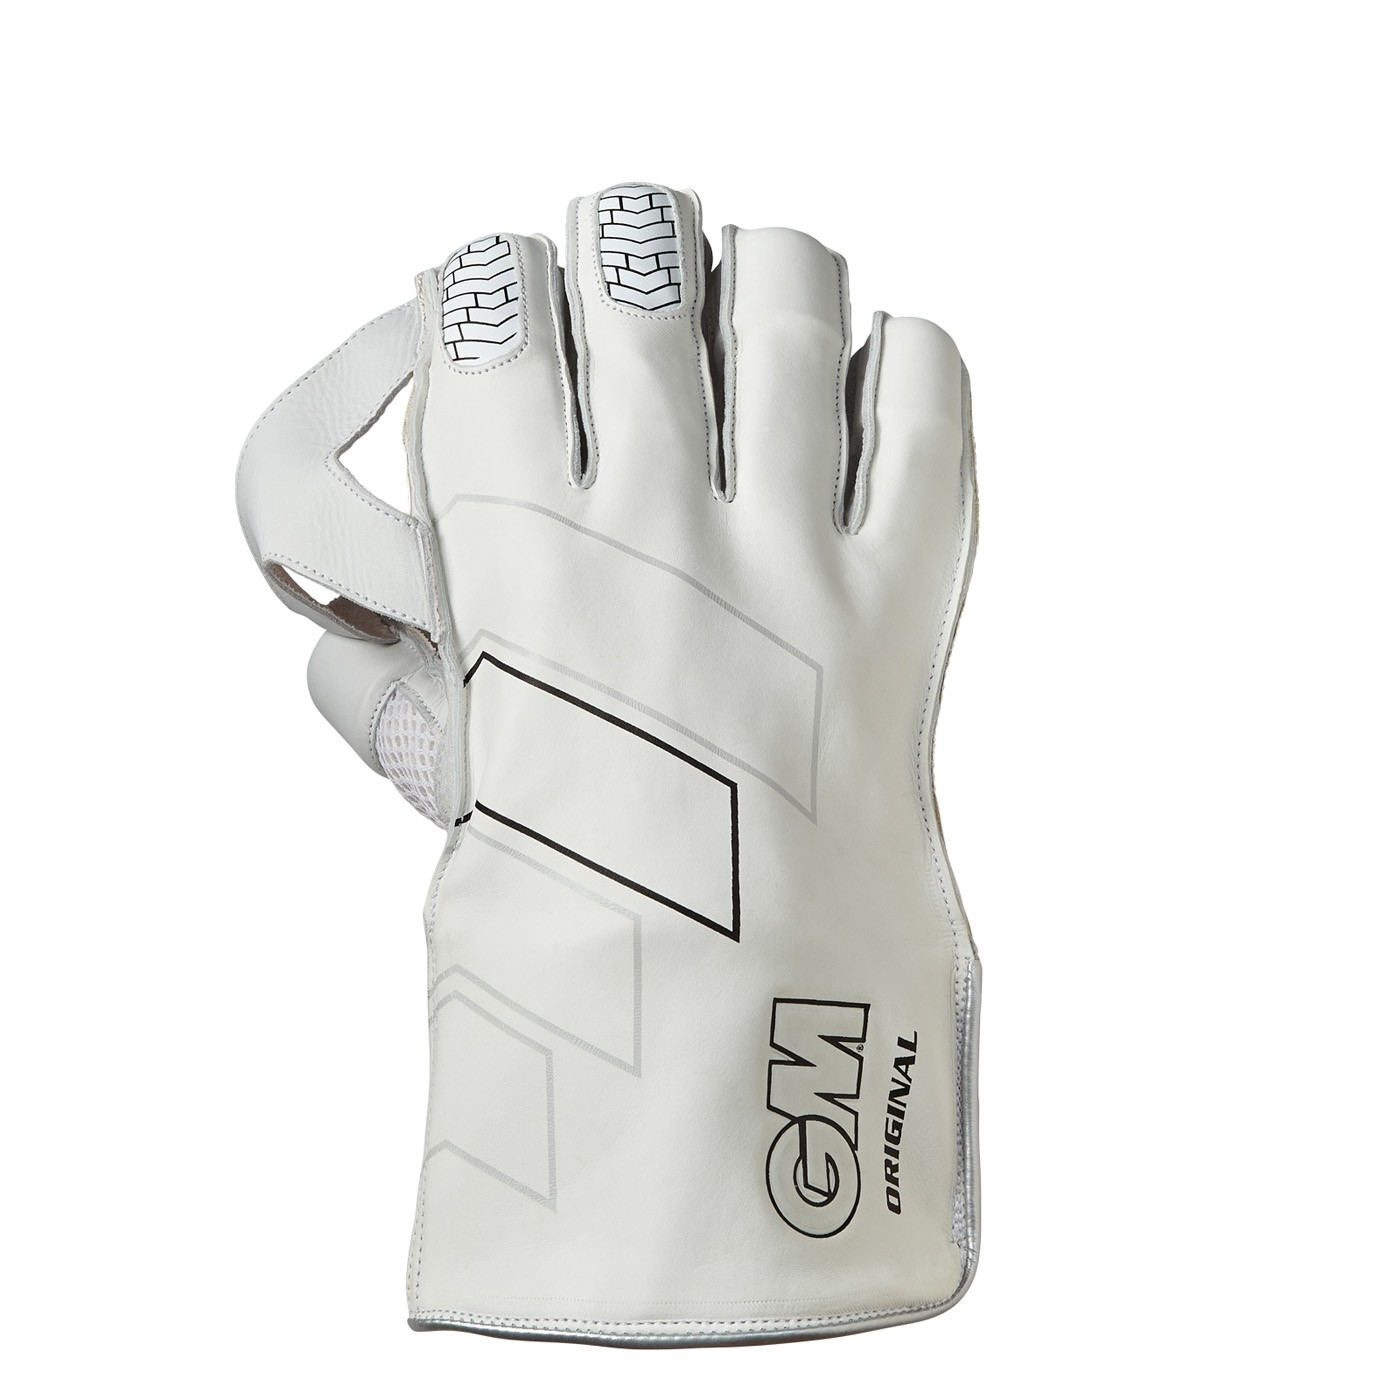 2021 Gunn and Moore Original Wicket Keeping Gloves